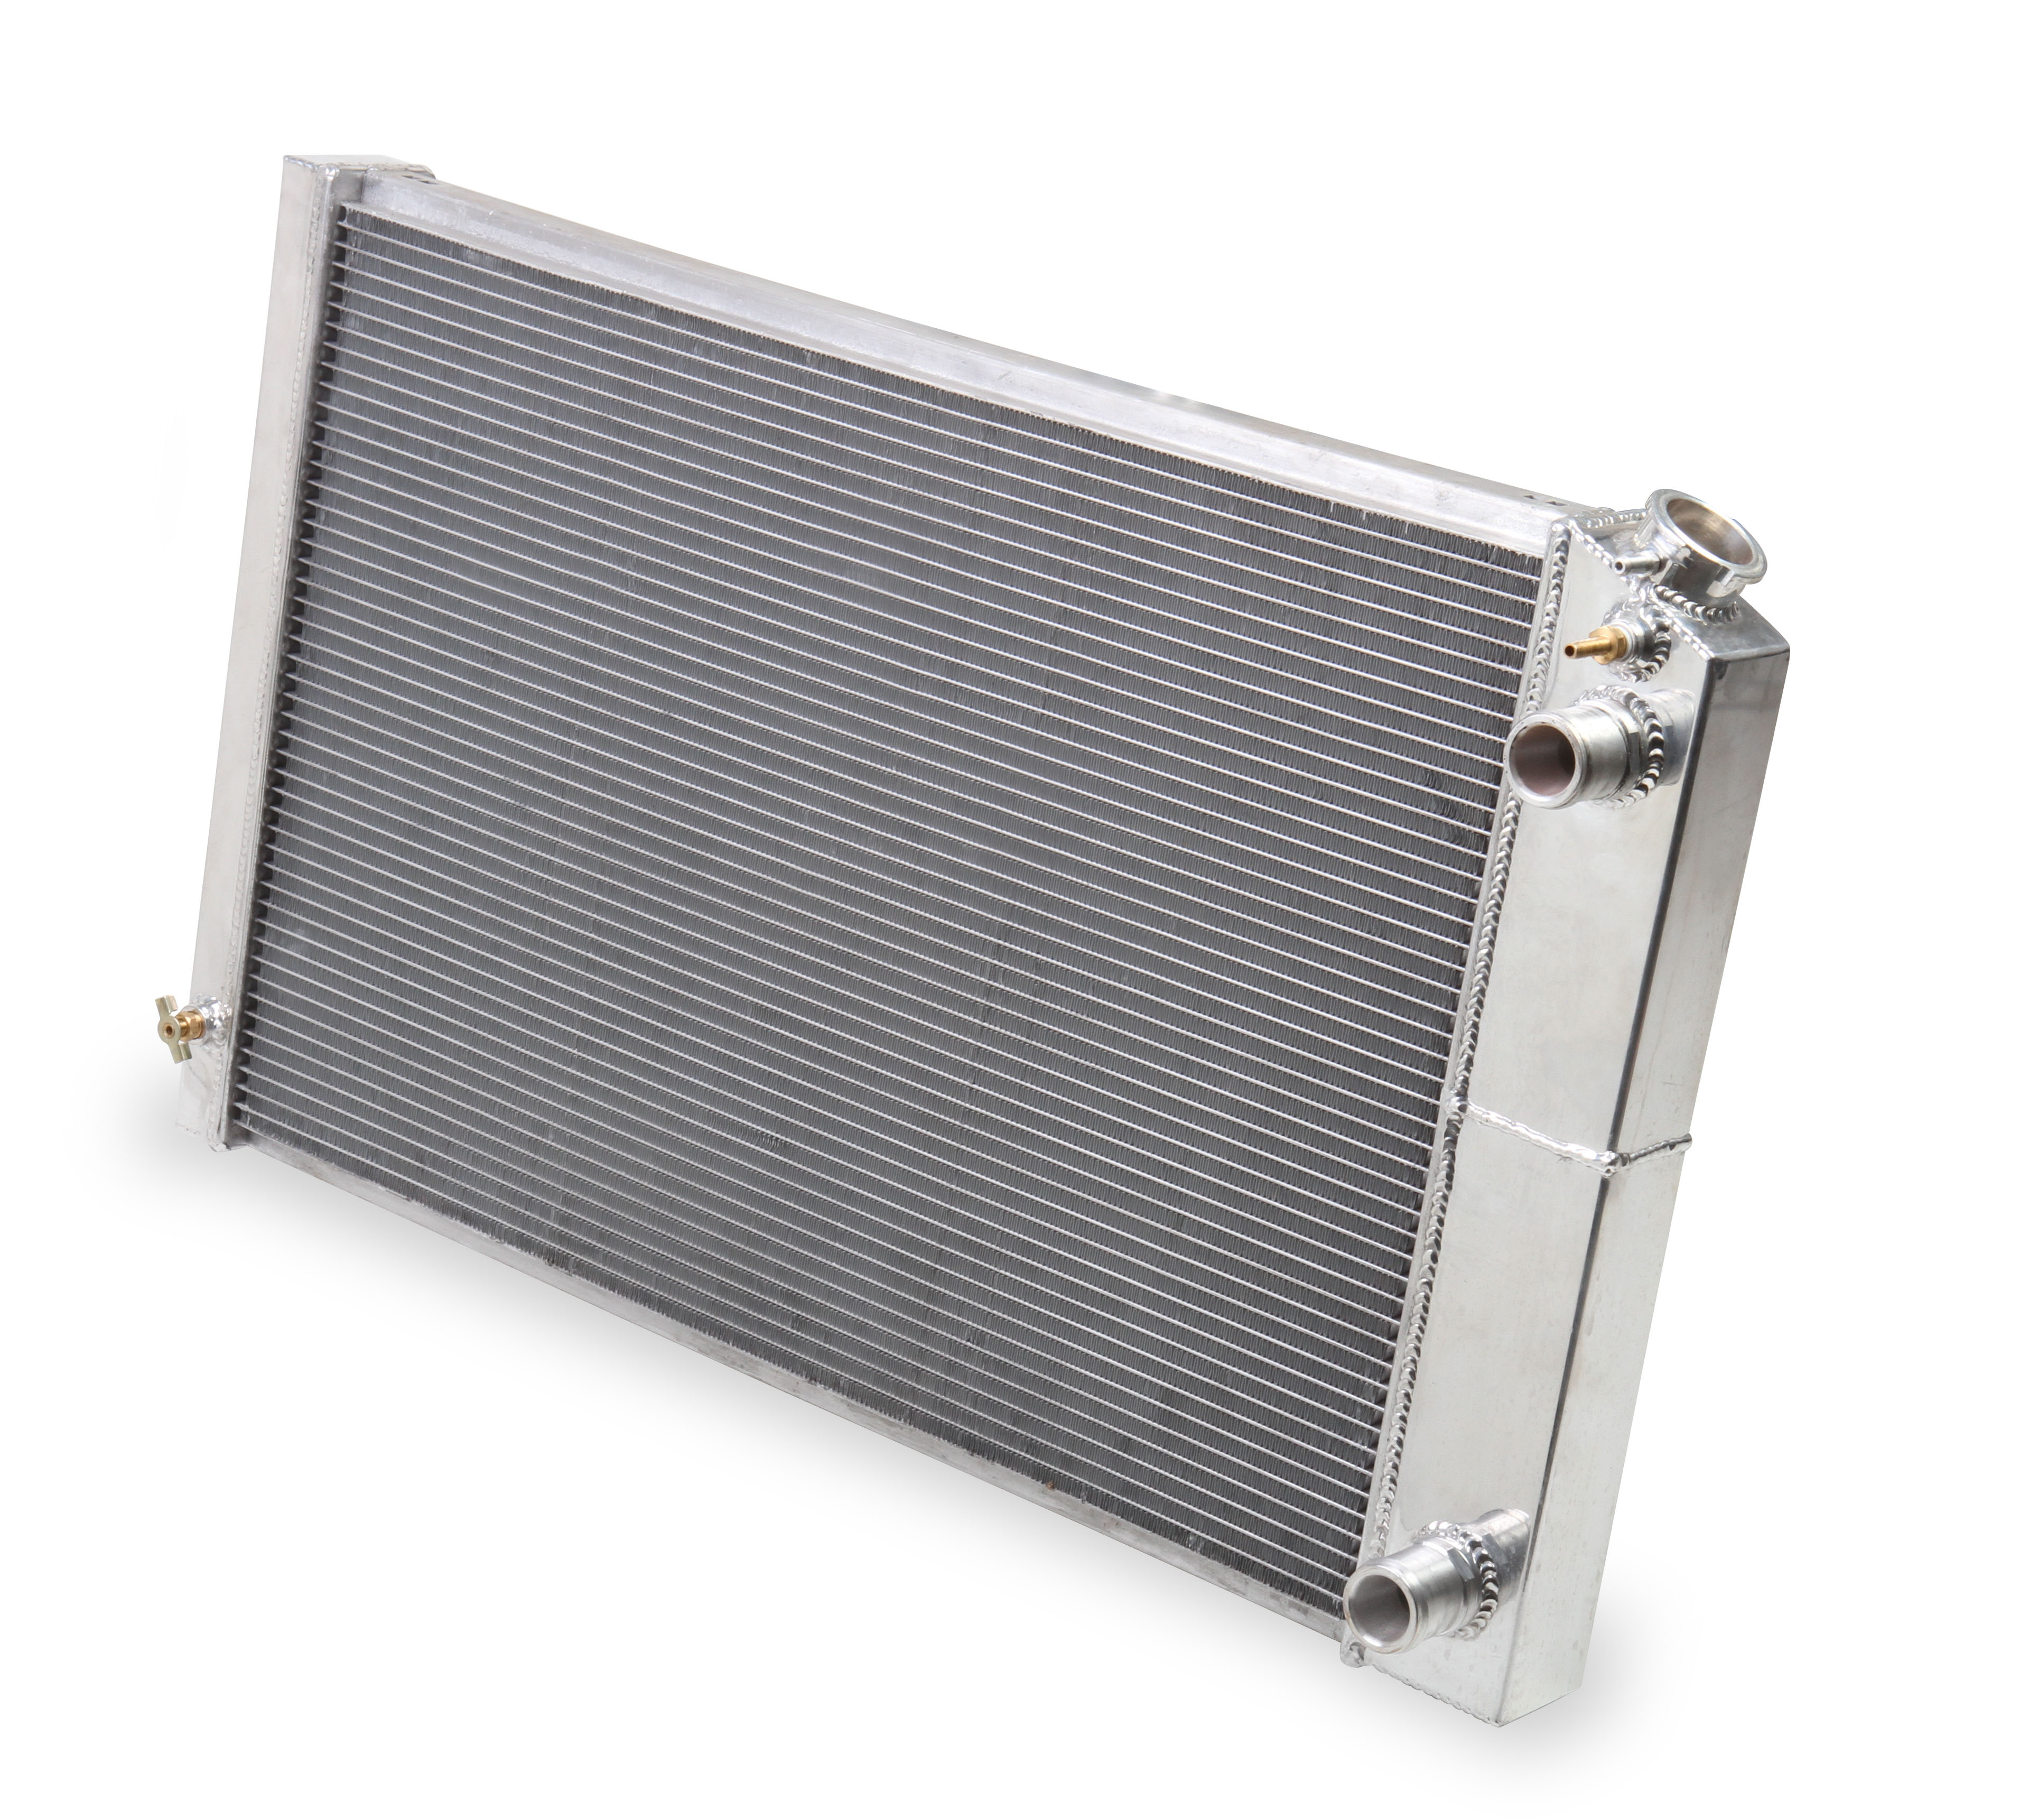 1979-1993 Ford Mustang Frostbite Performance LS Swap 3 Row Aluminum Radiator